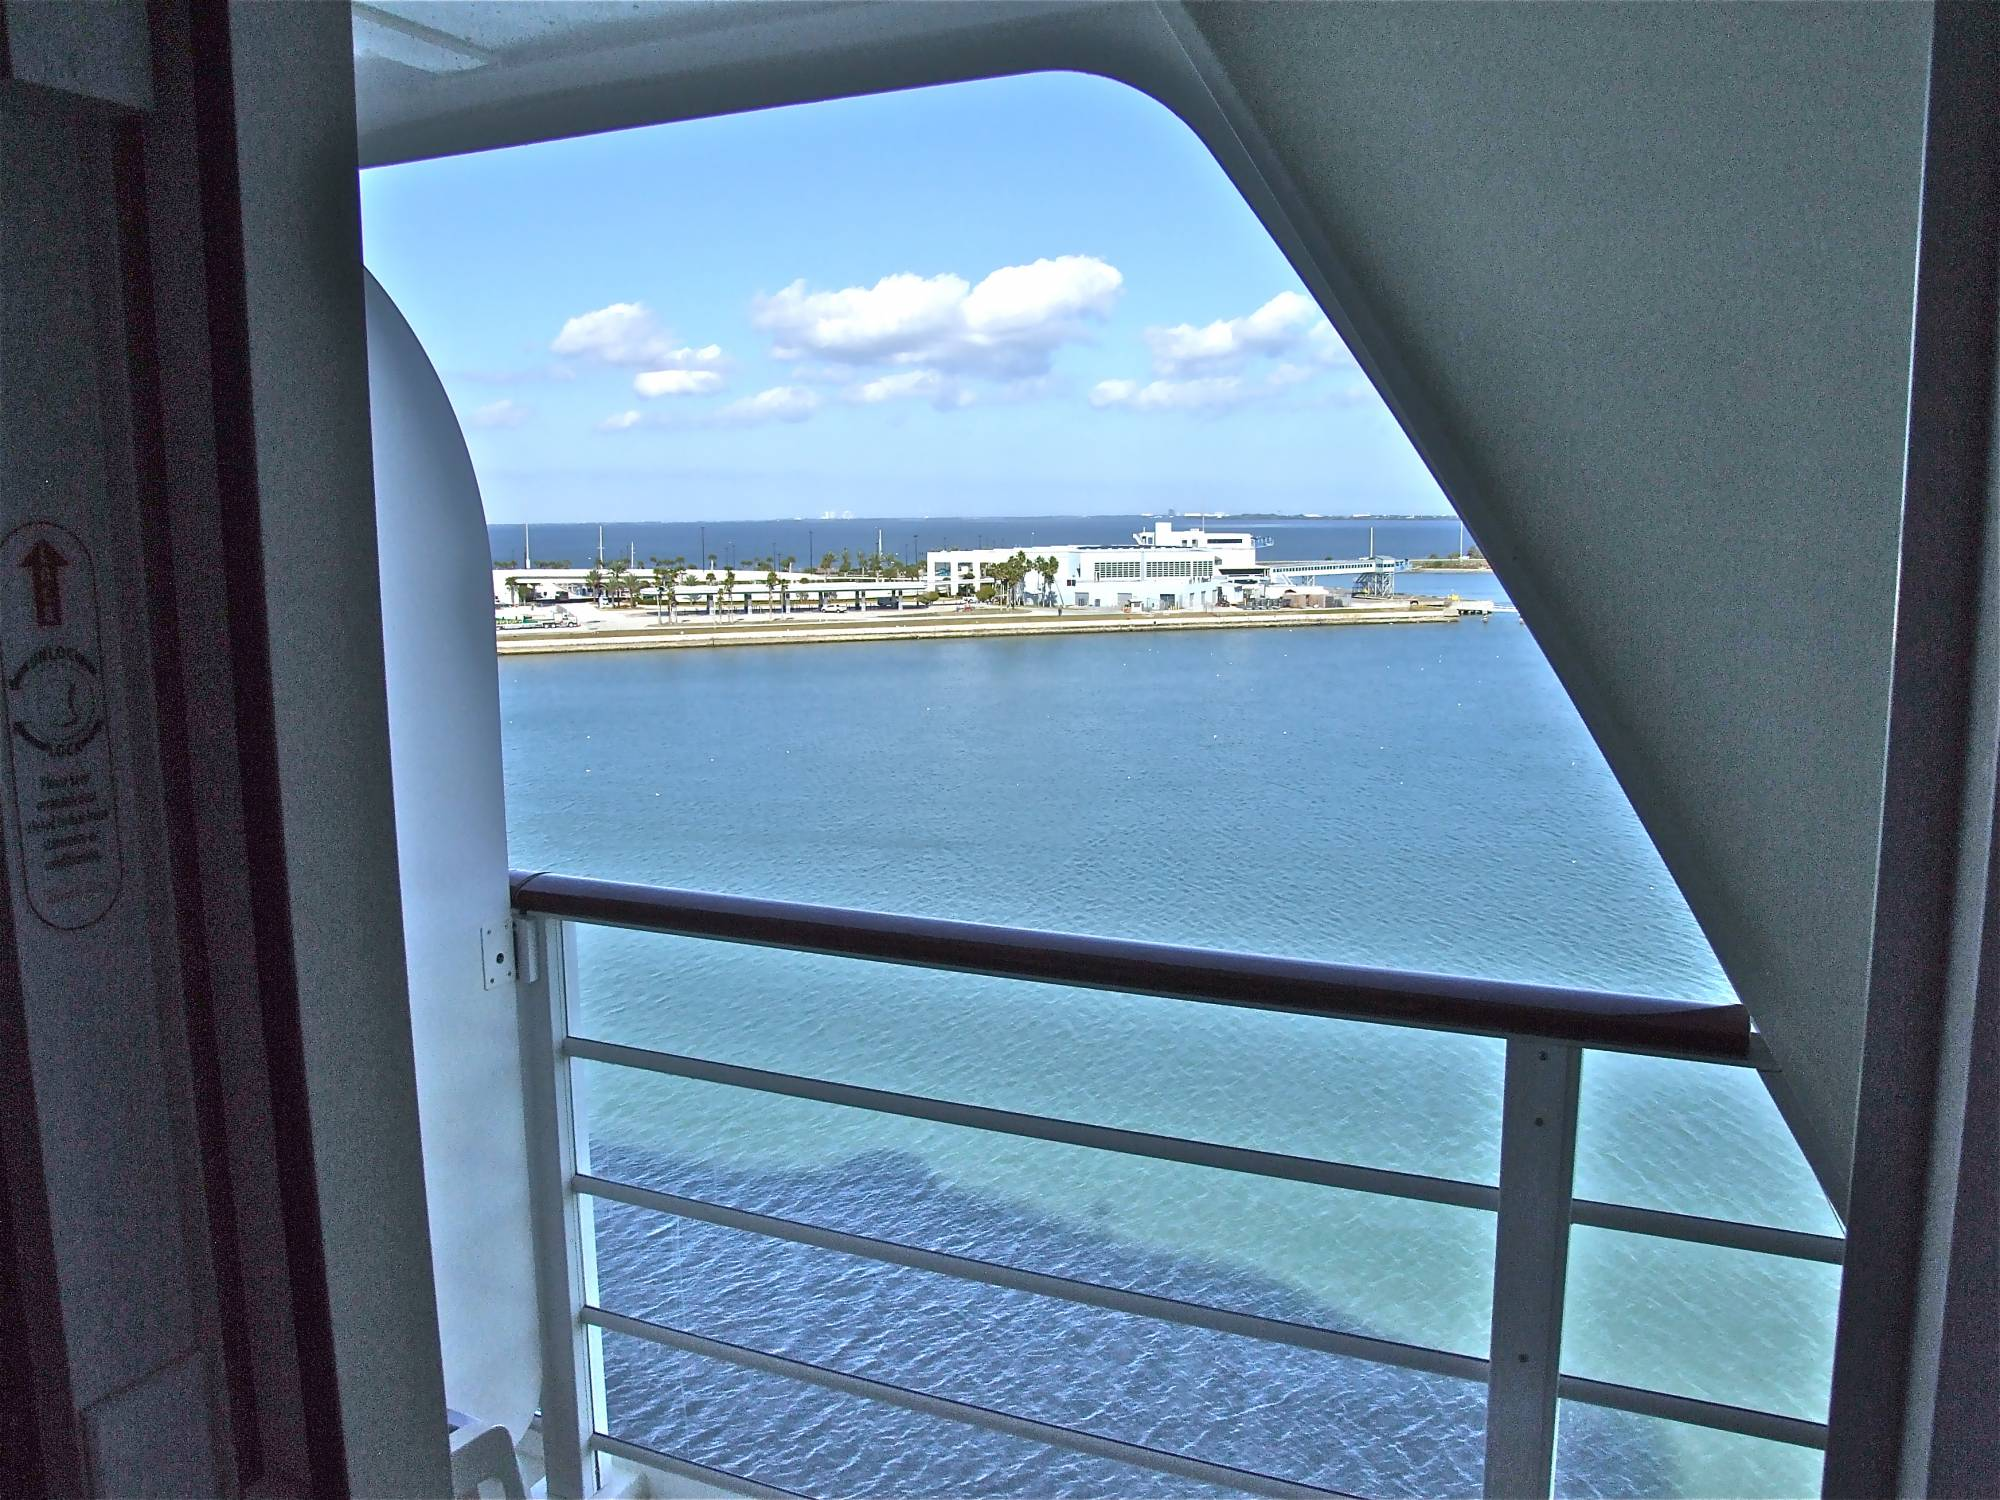 Disney Dream - View from Navigator's Verandah